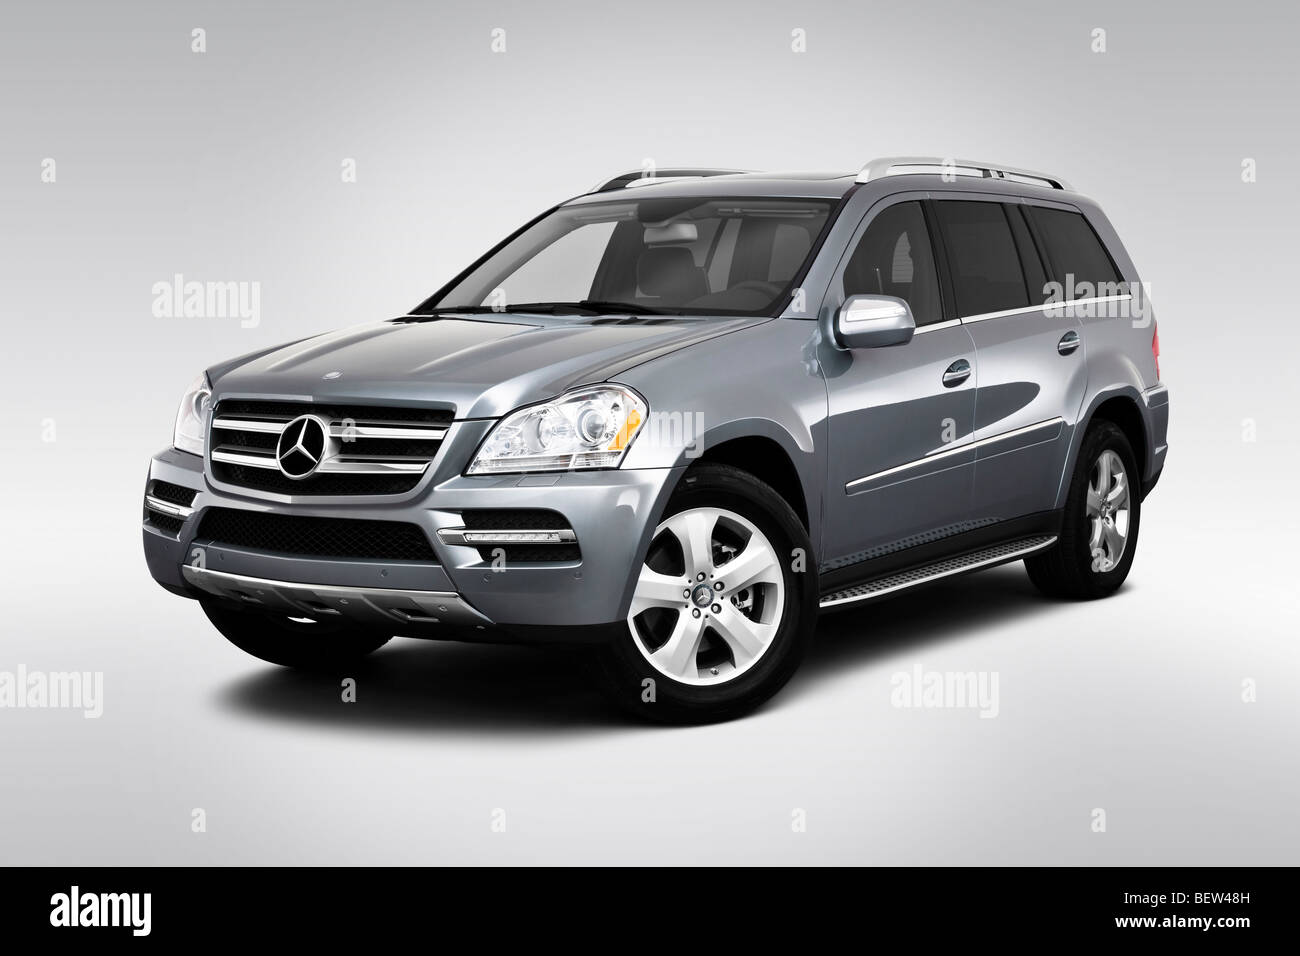 2010 Mercedes-Benz GL-Class GL450 in Silver - Front angle view